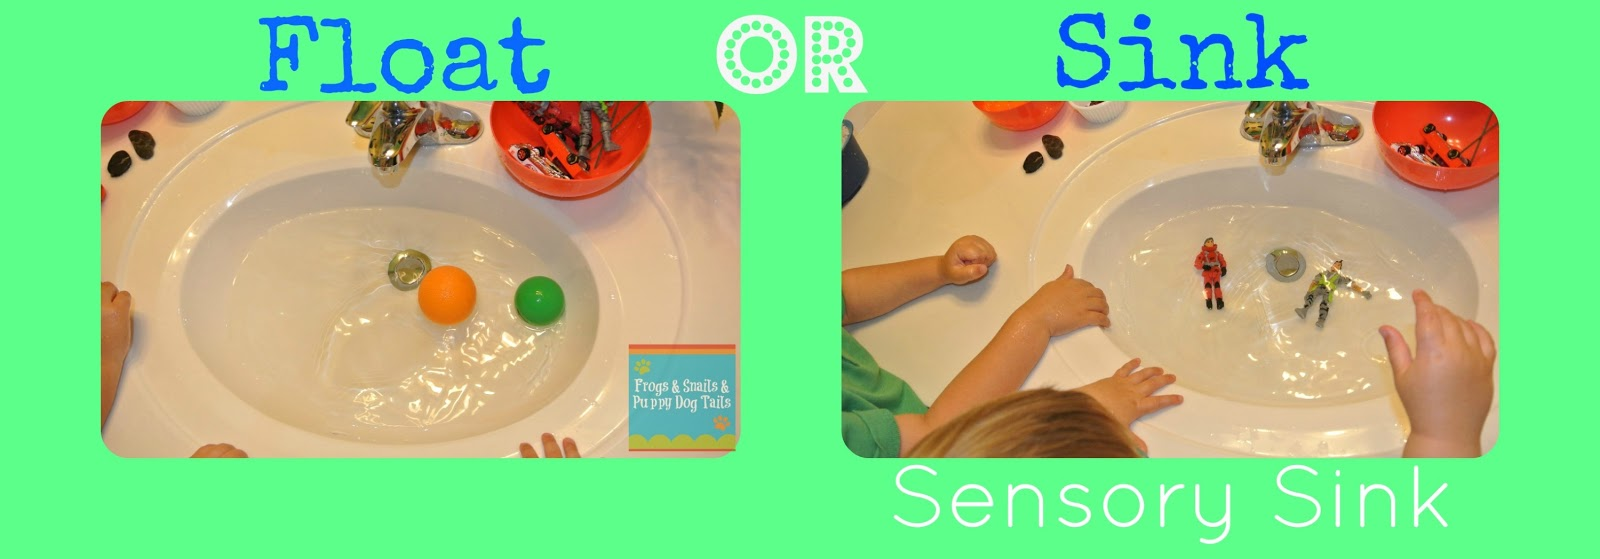 Sinking And Floating Pictures Sink or Float Sensory Sink